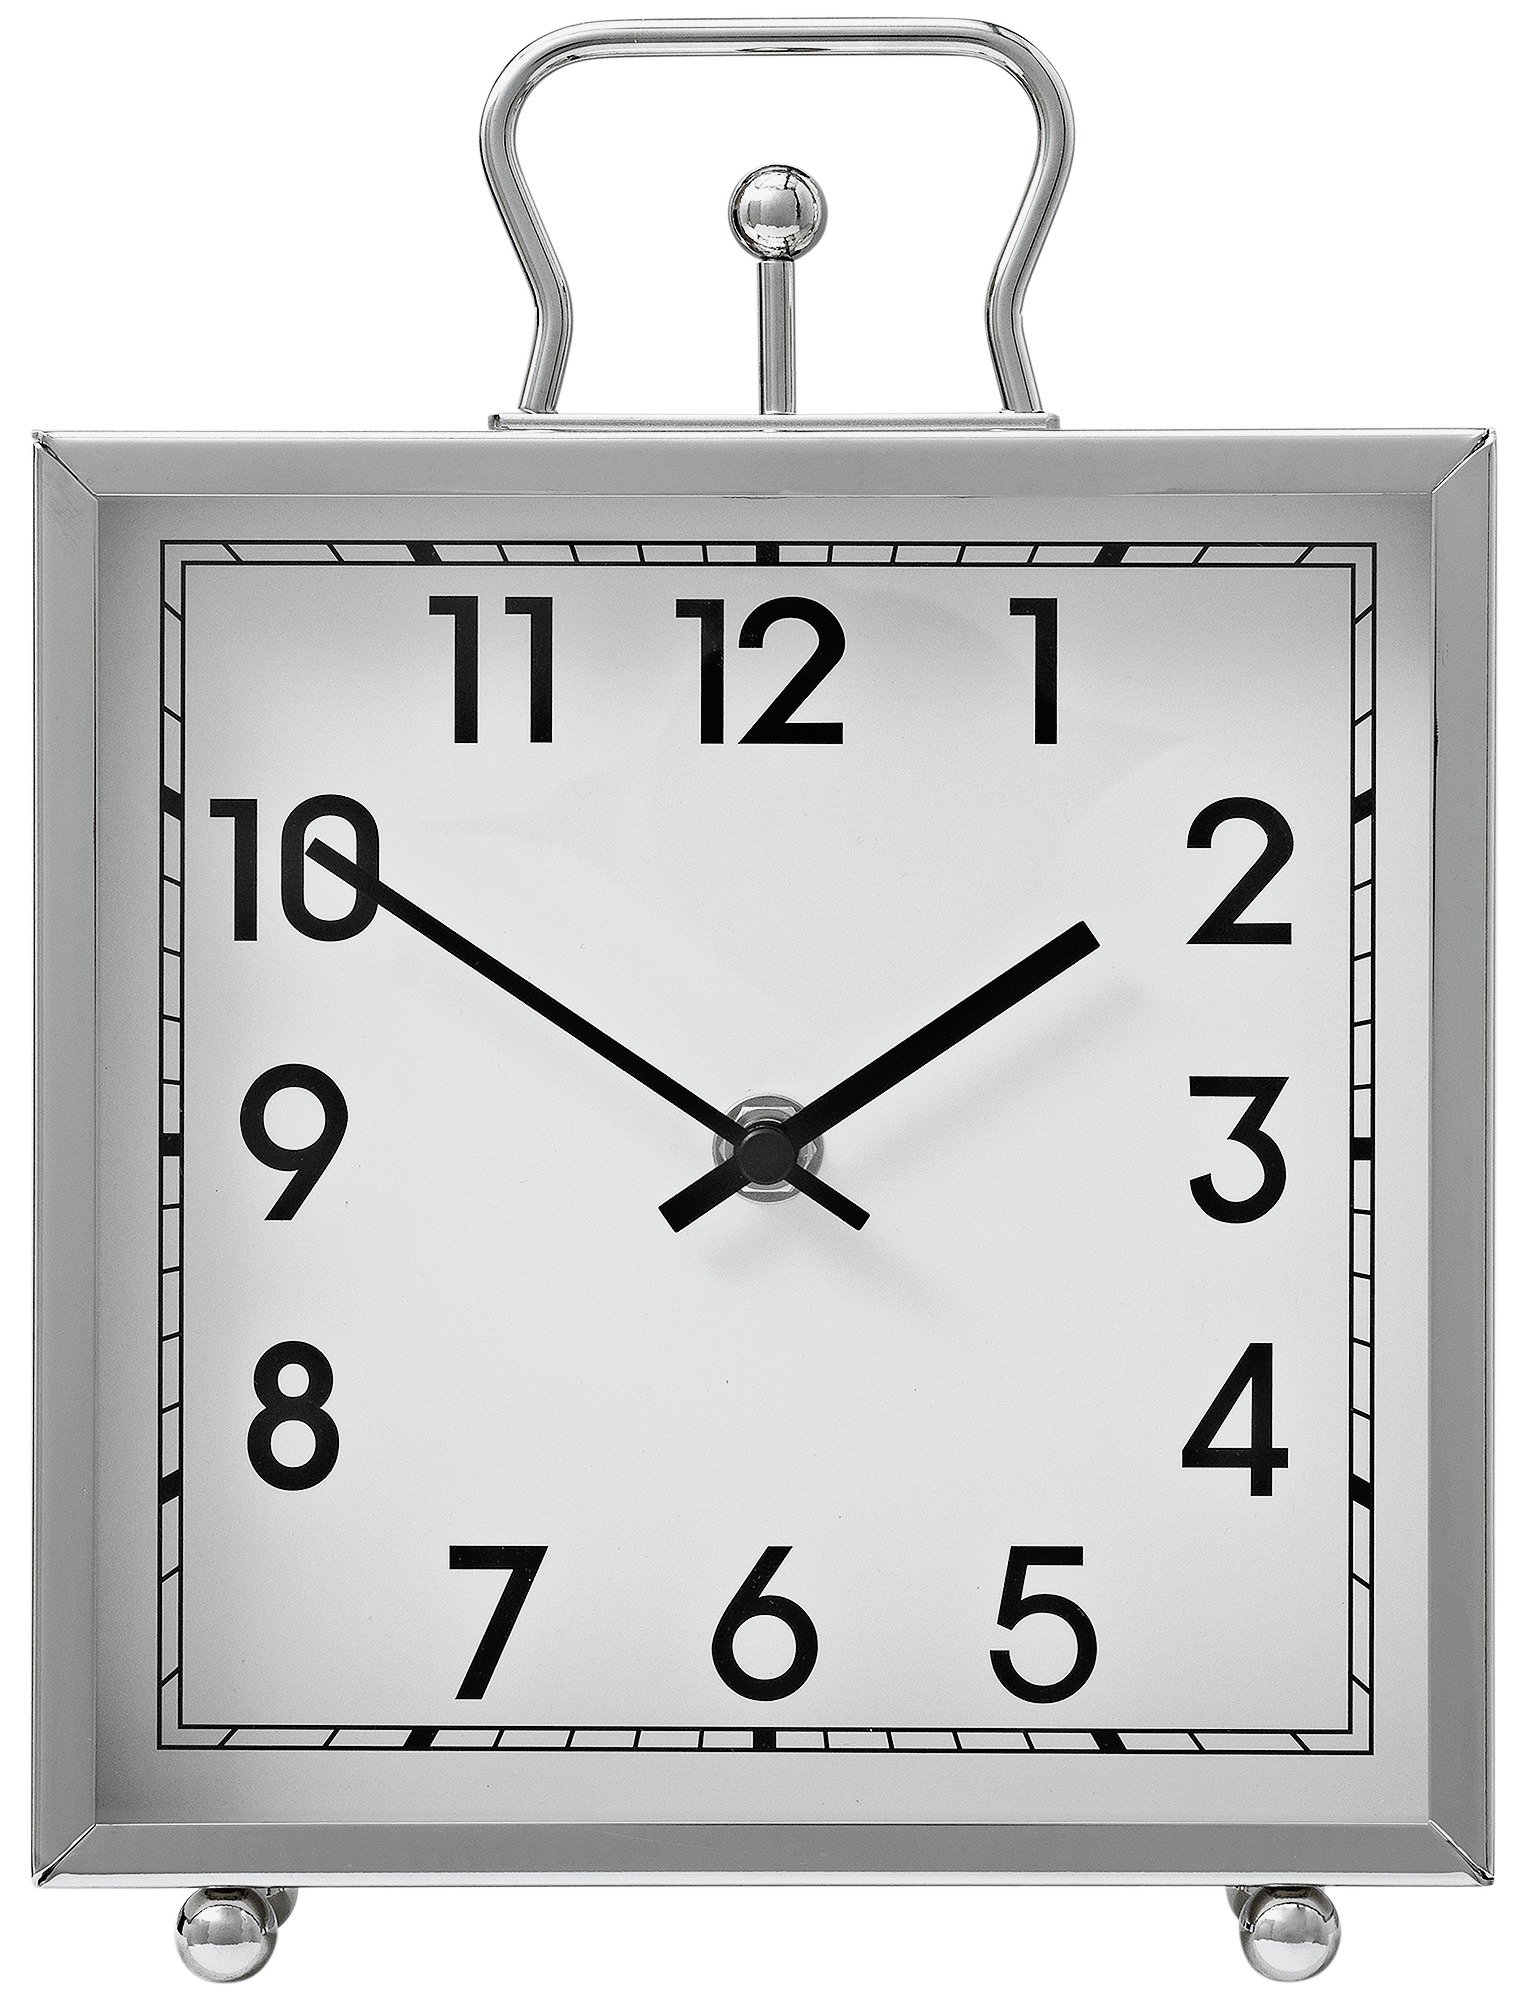 Heart of House Tuscany Square Mantel Clock - Silver.